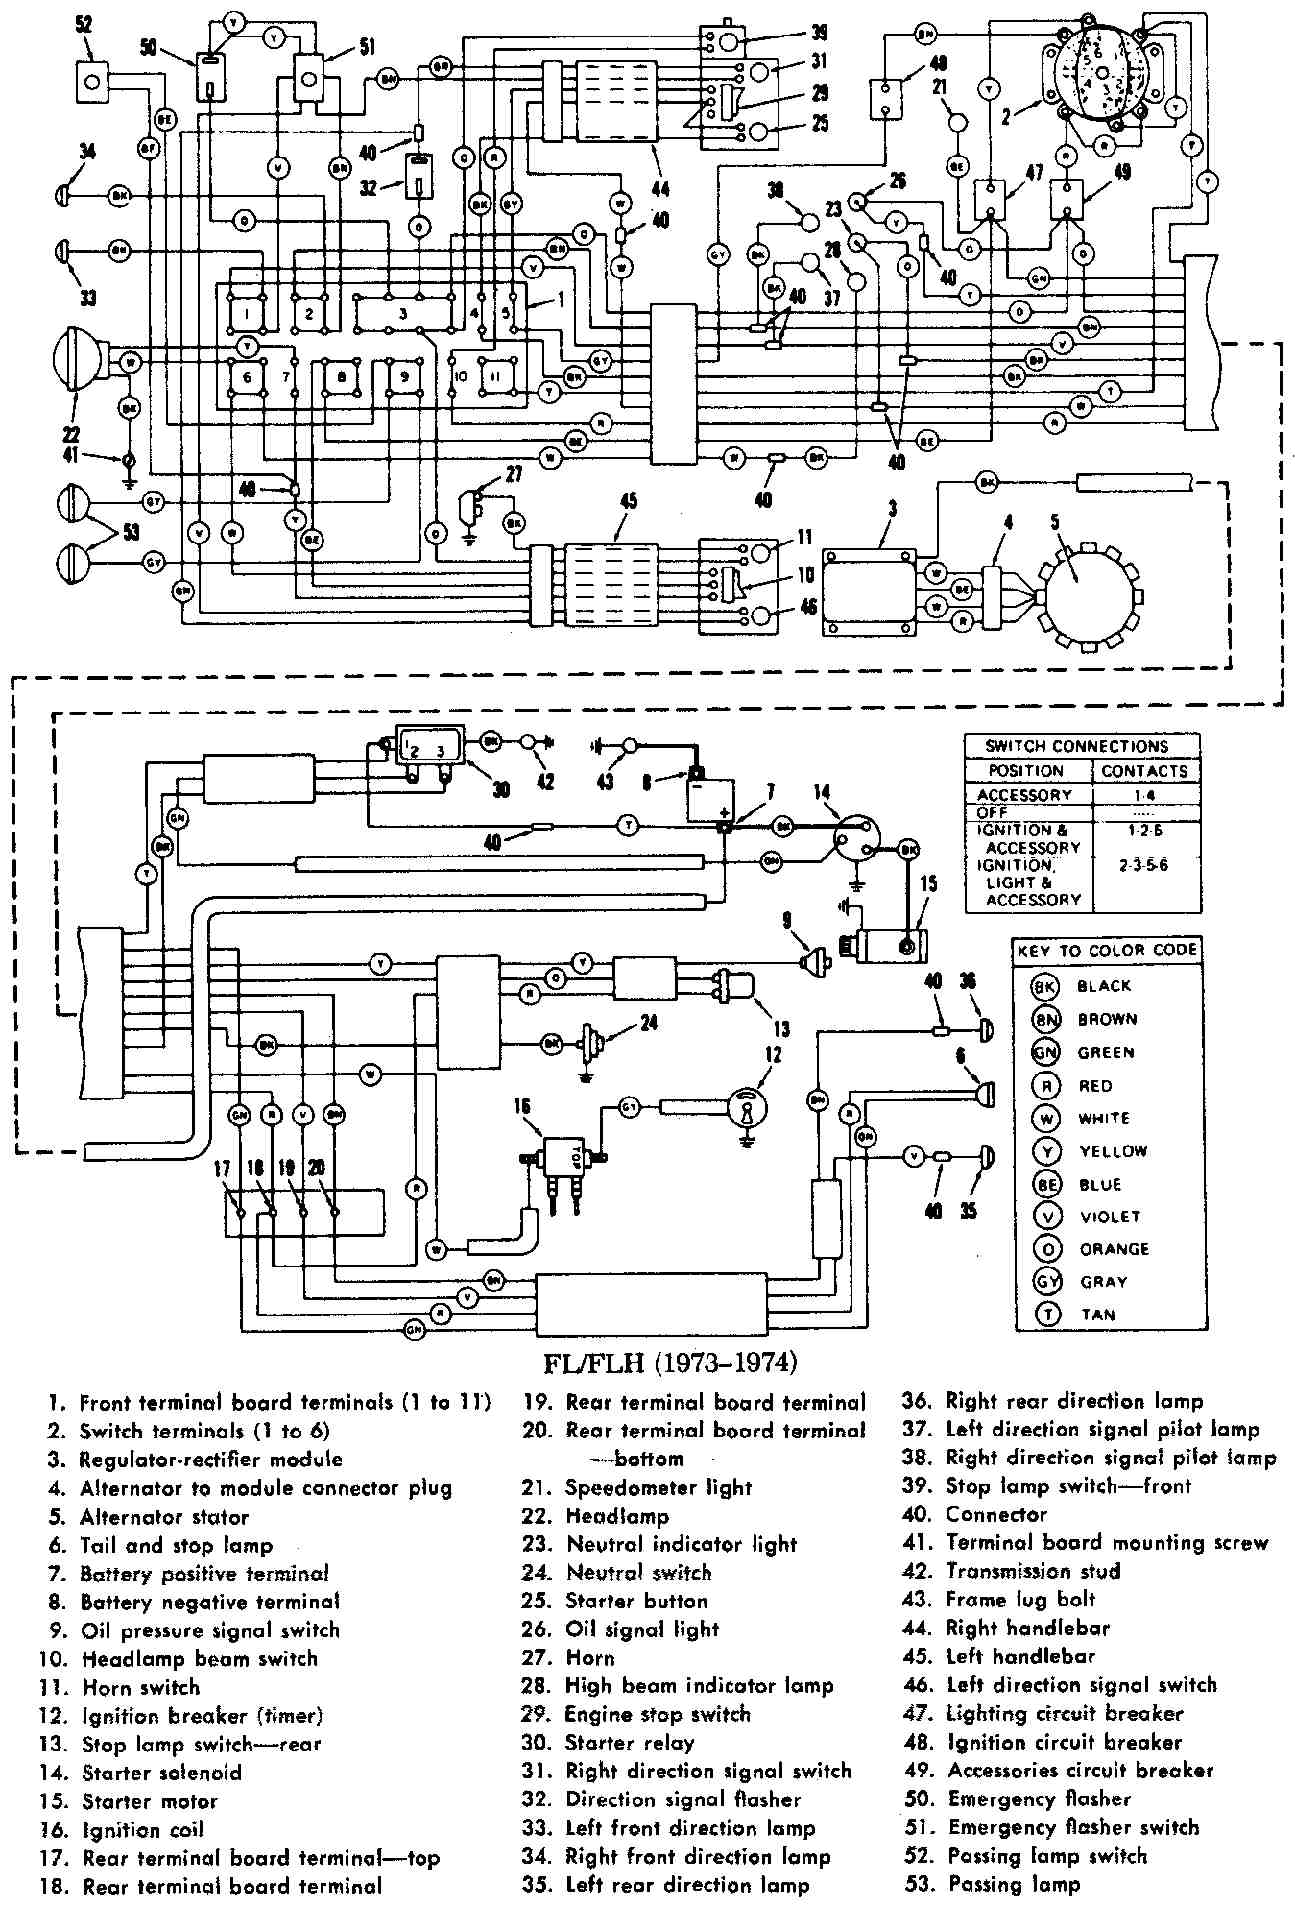 1986 Sportster Wiring Diagram. Engine. Wiring Diagram Images